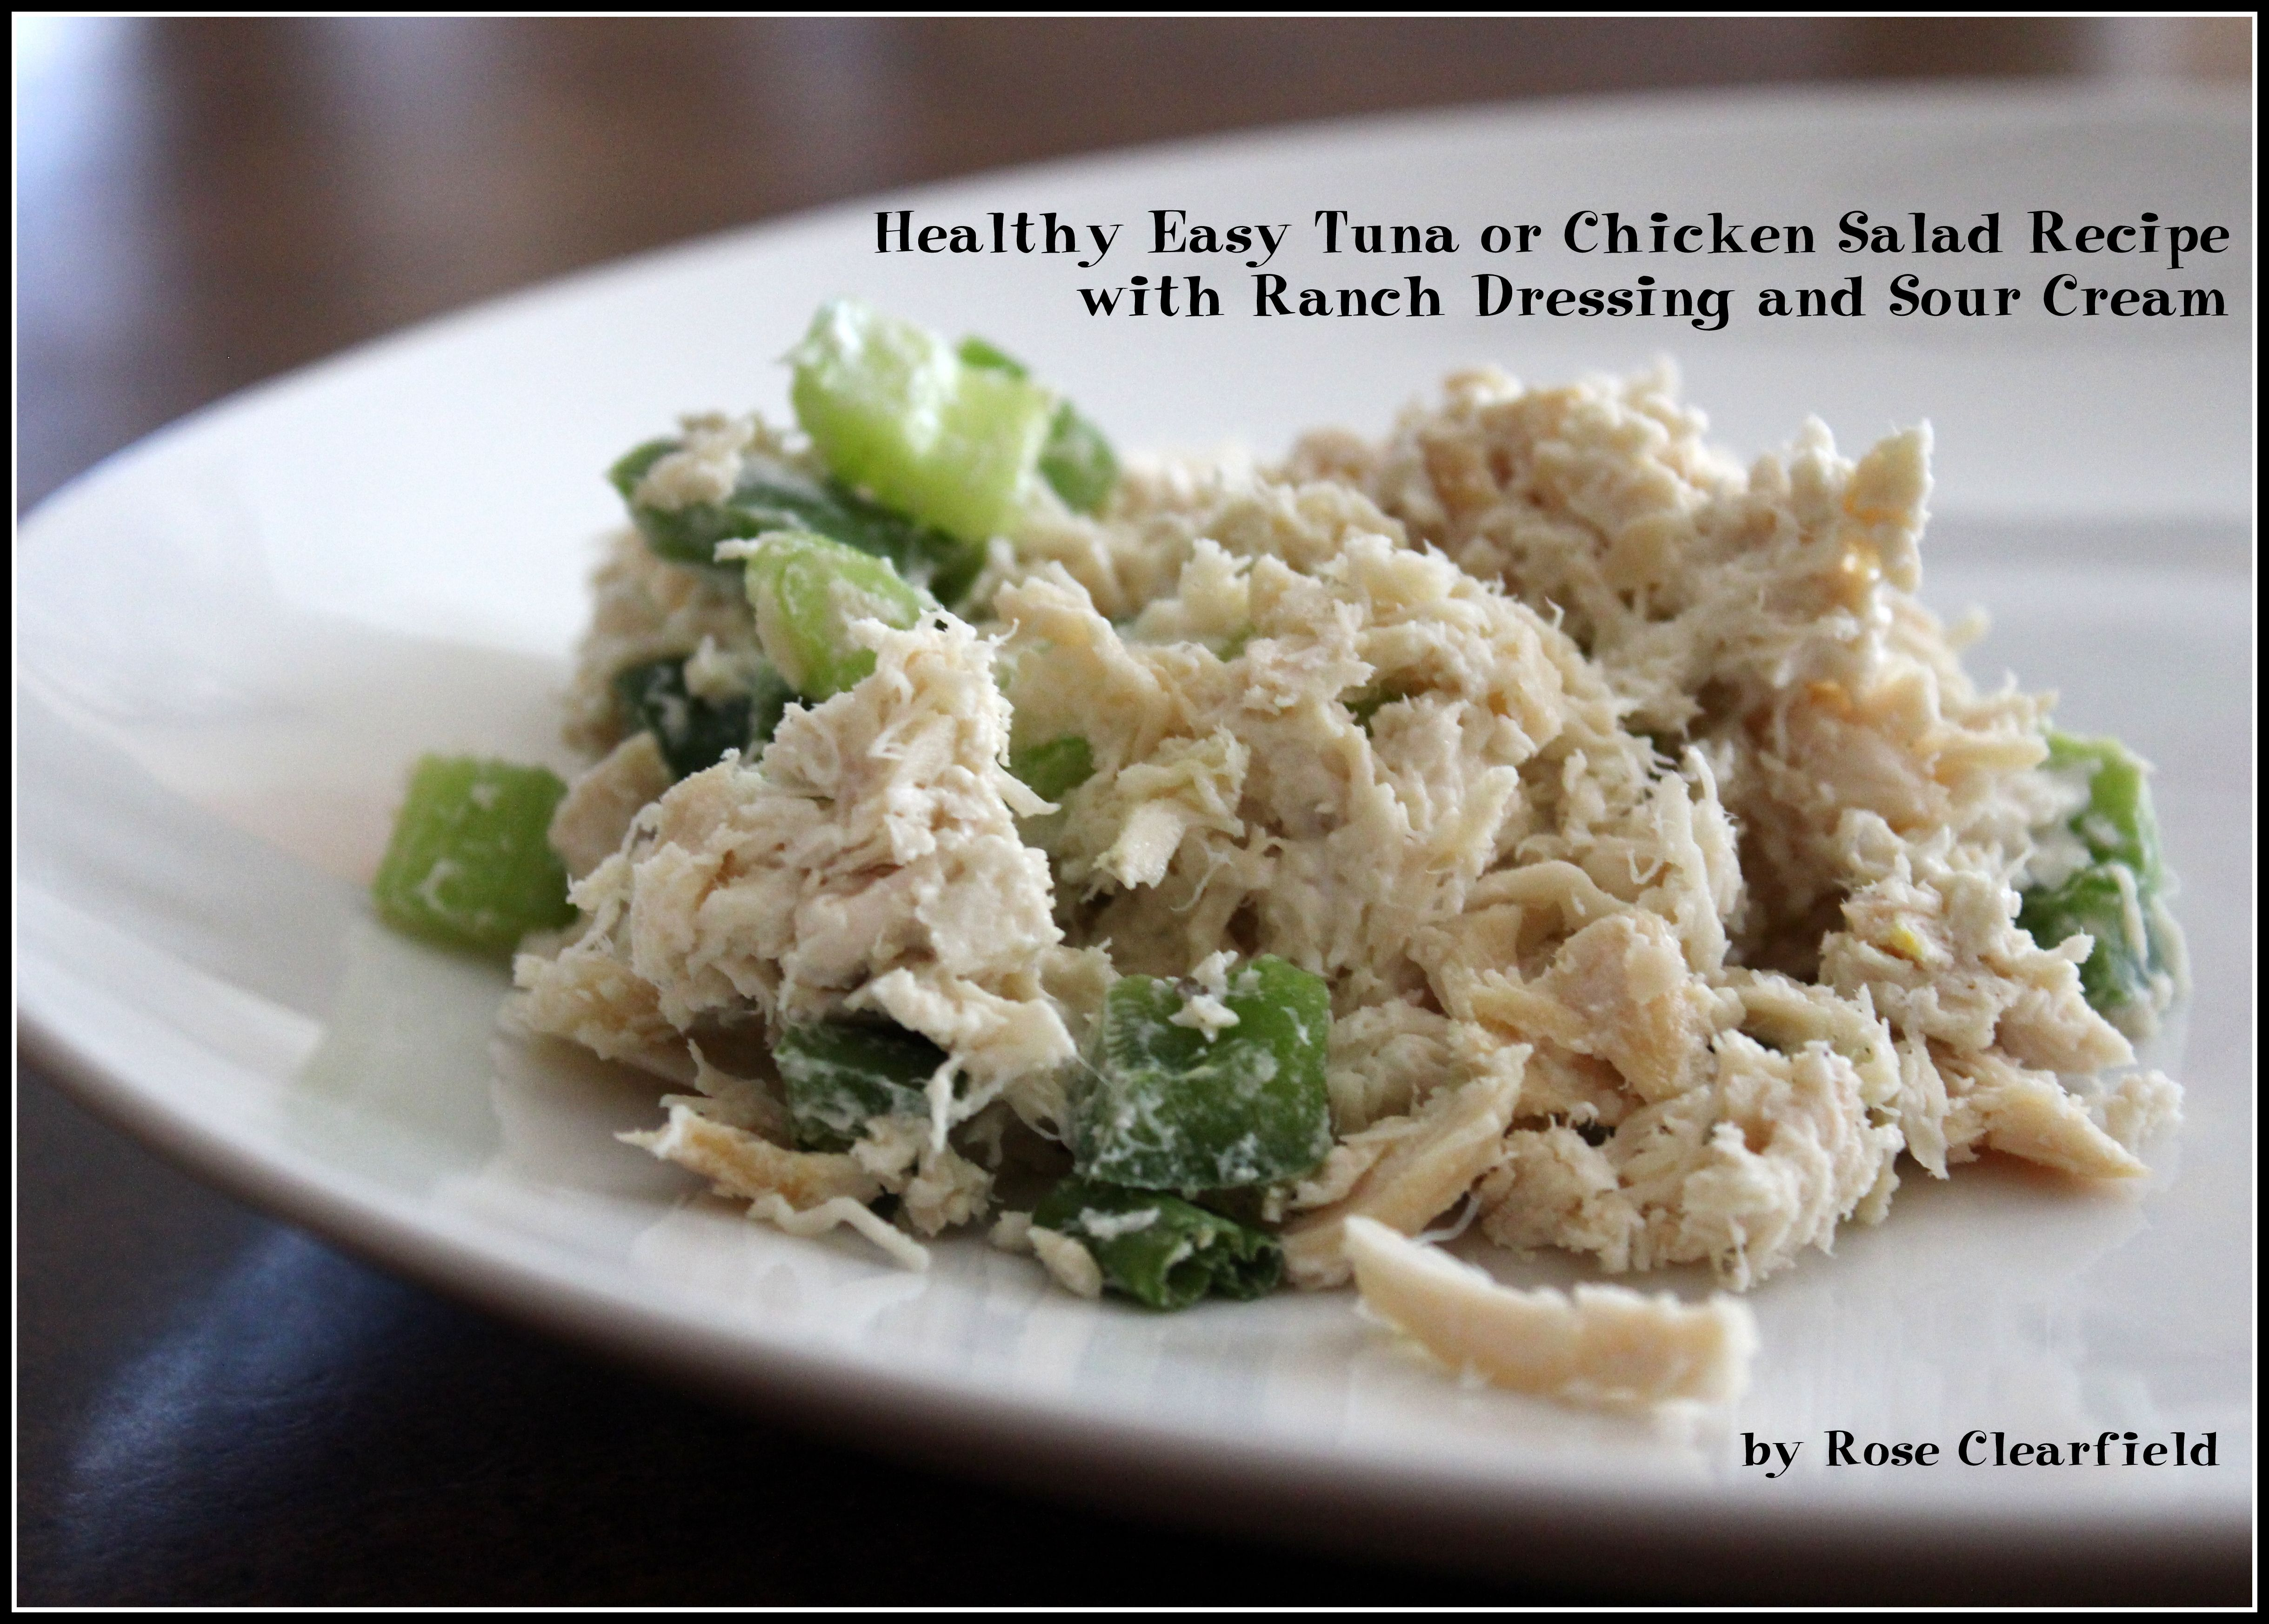 Healthy Easy Tuna Or Chicken Salad Recipe With Ranch Dressing And Sour Cream Salad Recipes Healthy Easy Chicken Salad Recipes Healthy Salad Recipes